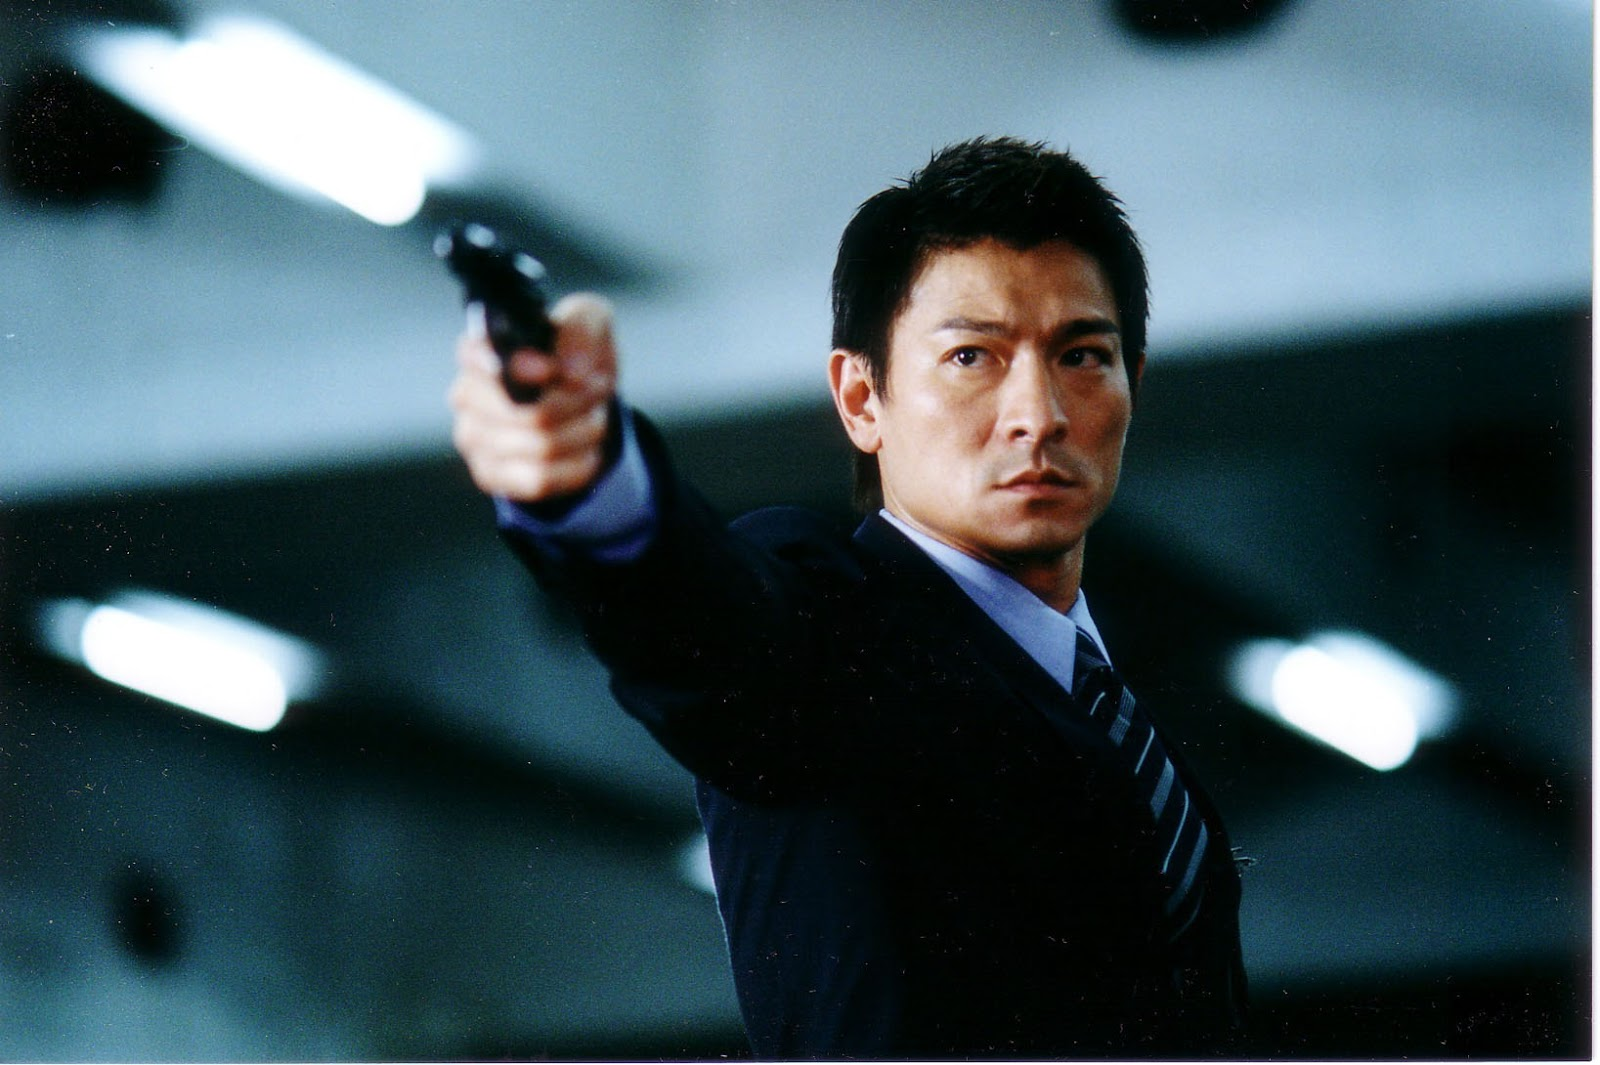 Latest Bollywood Hd Wallpapers Andy Lau Hd Wallpapers High Definition Free Background